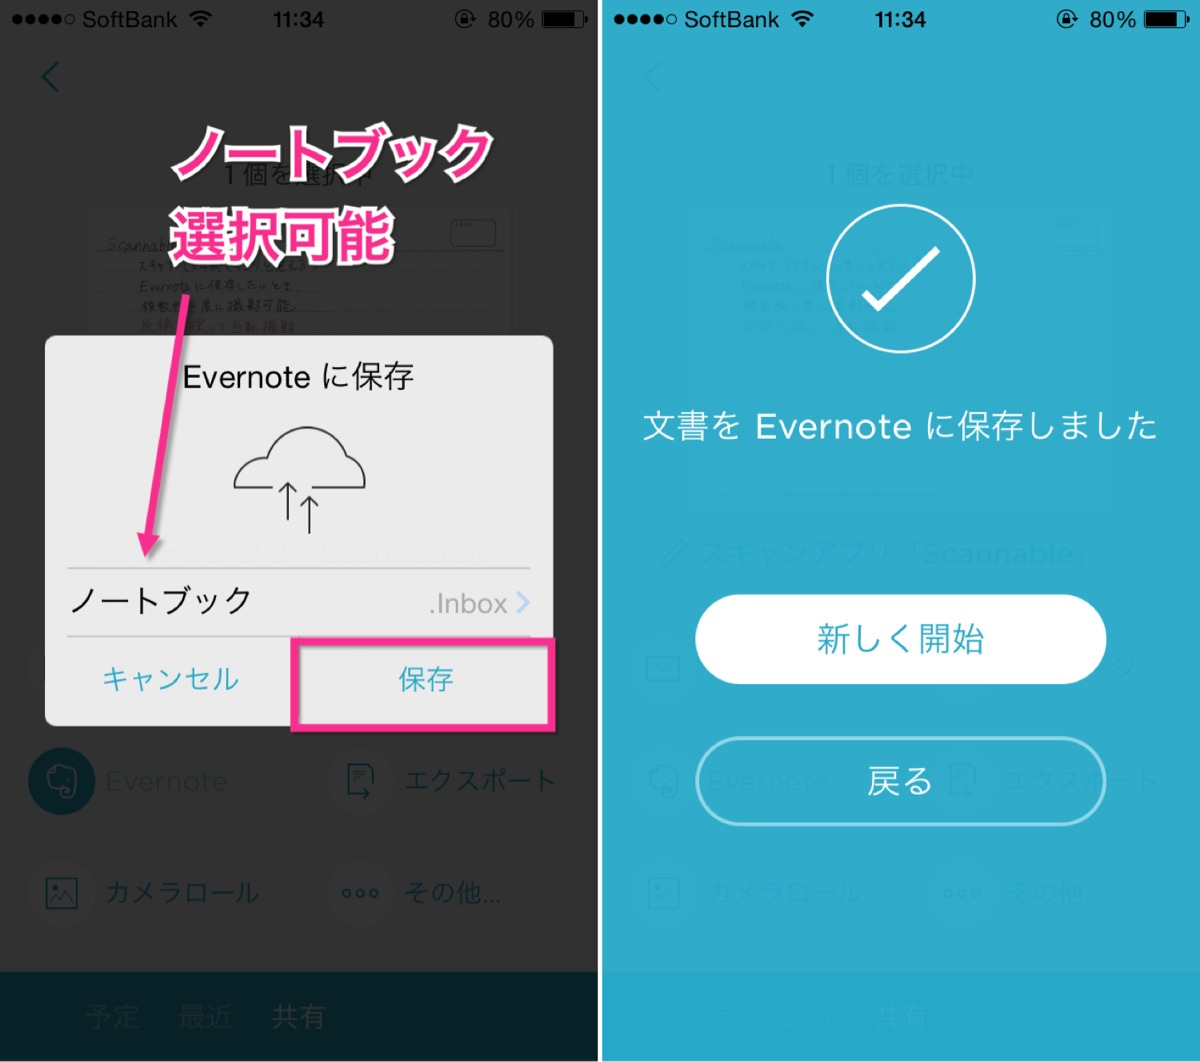 evernote scannableの使い方